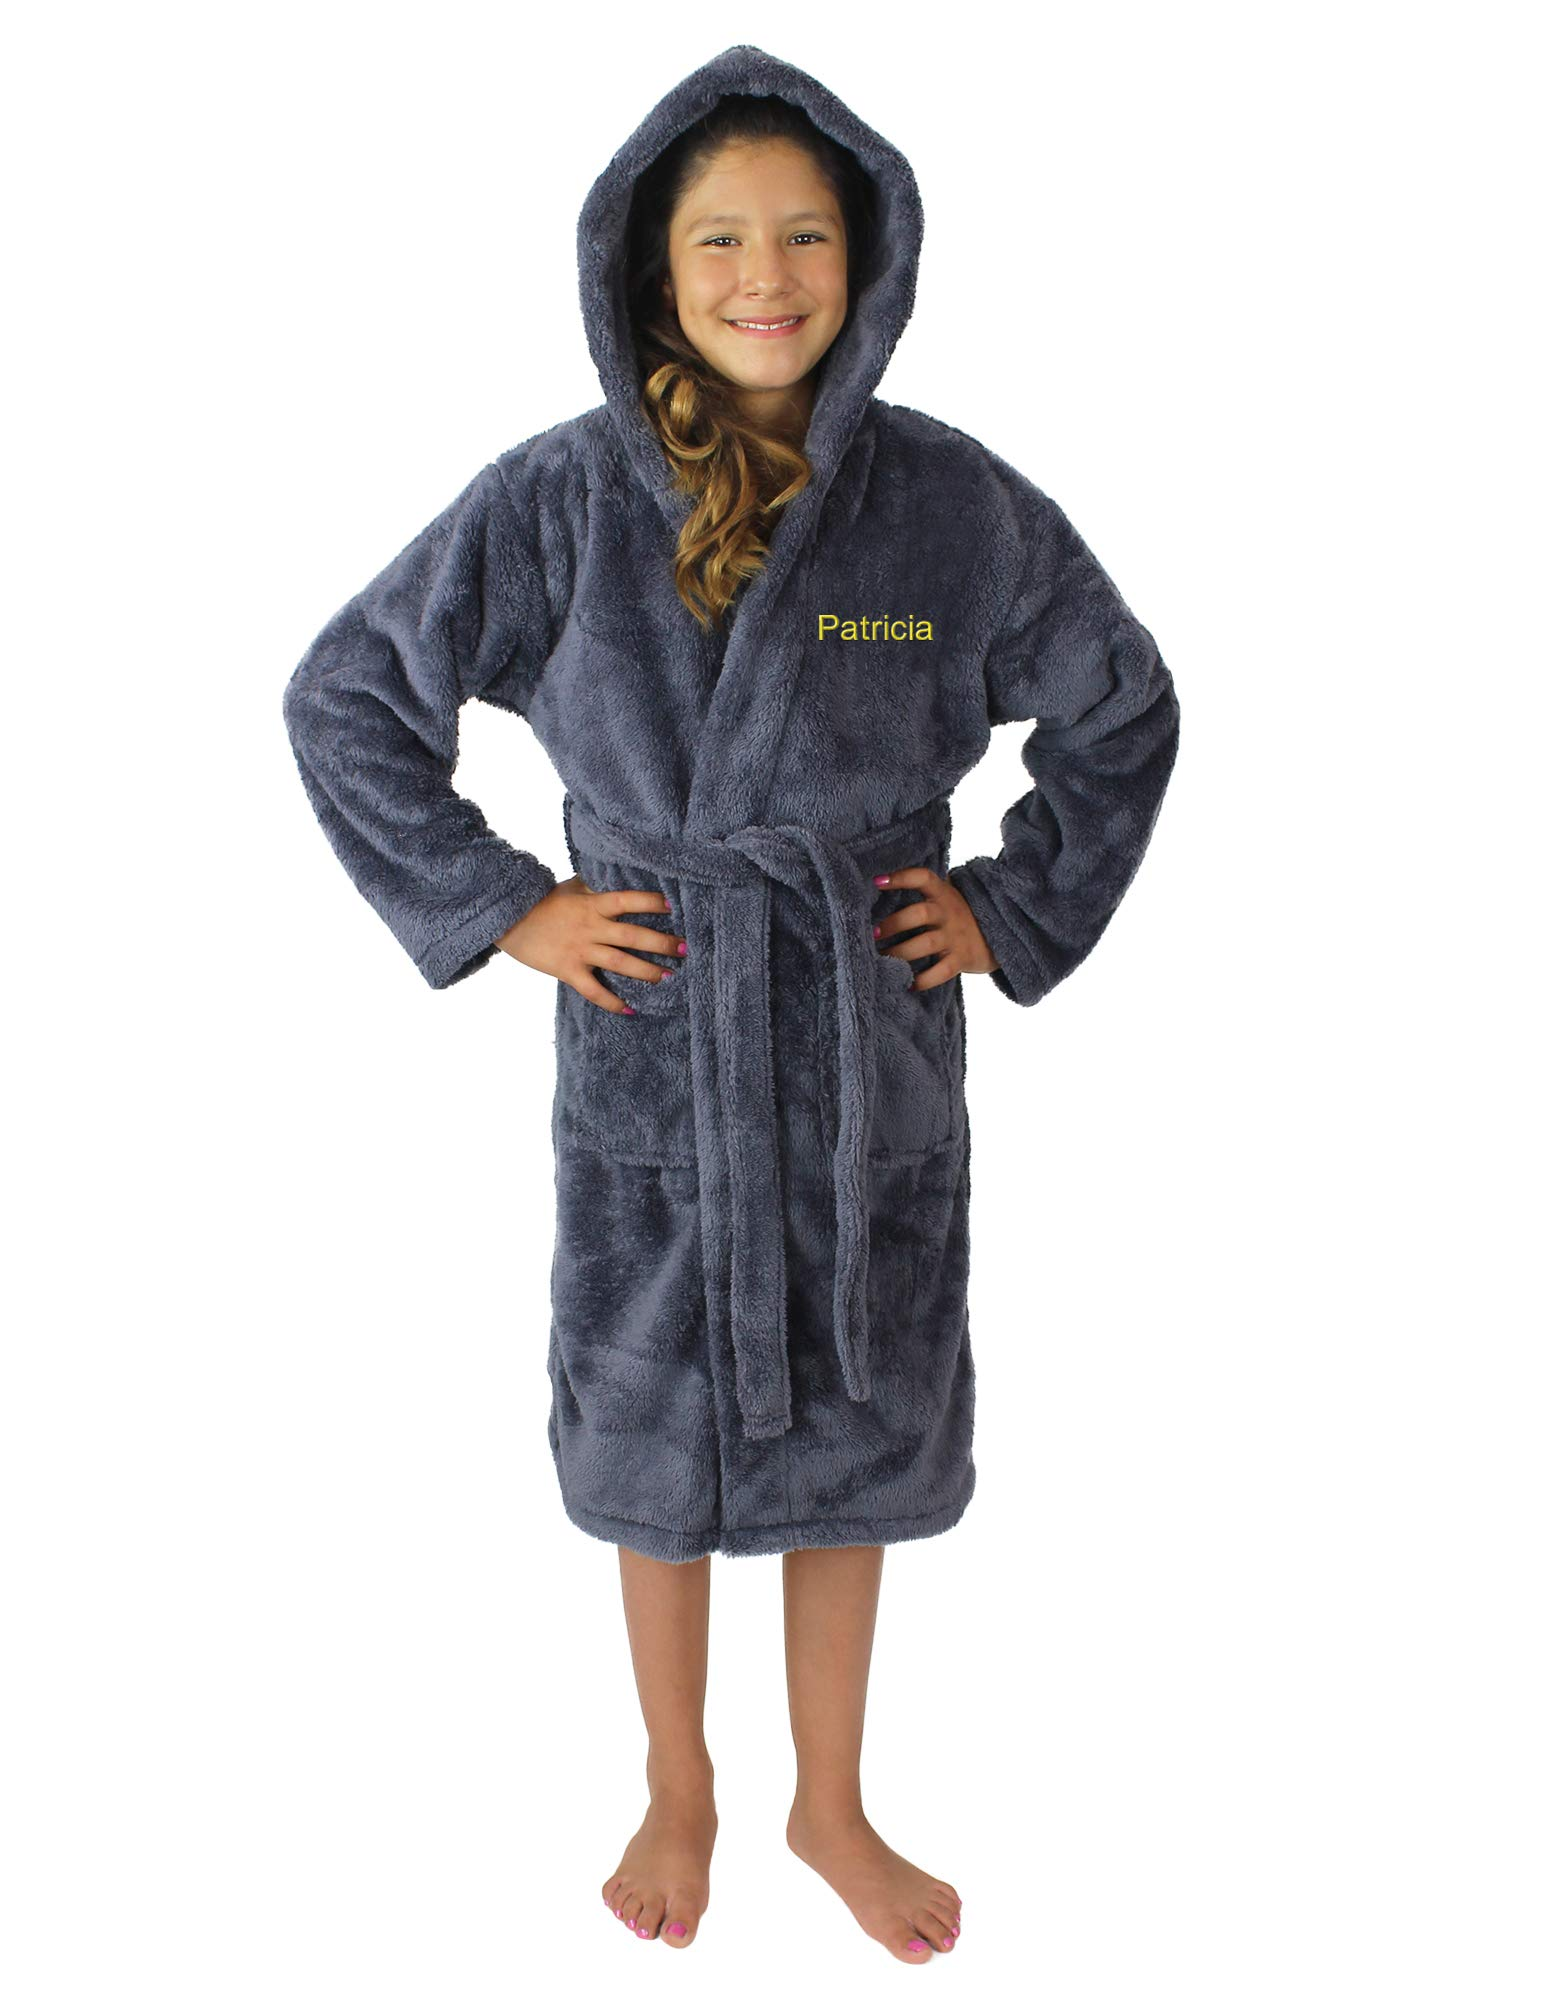 Kids Plush and Soft Fleece Hooded Bathrobe for Girls and Boys (Gray, Large)